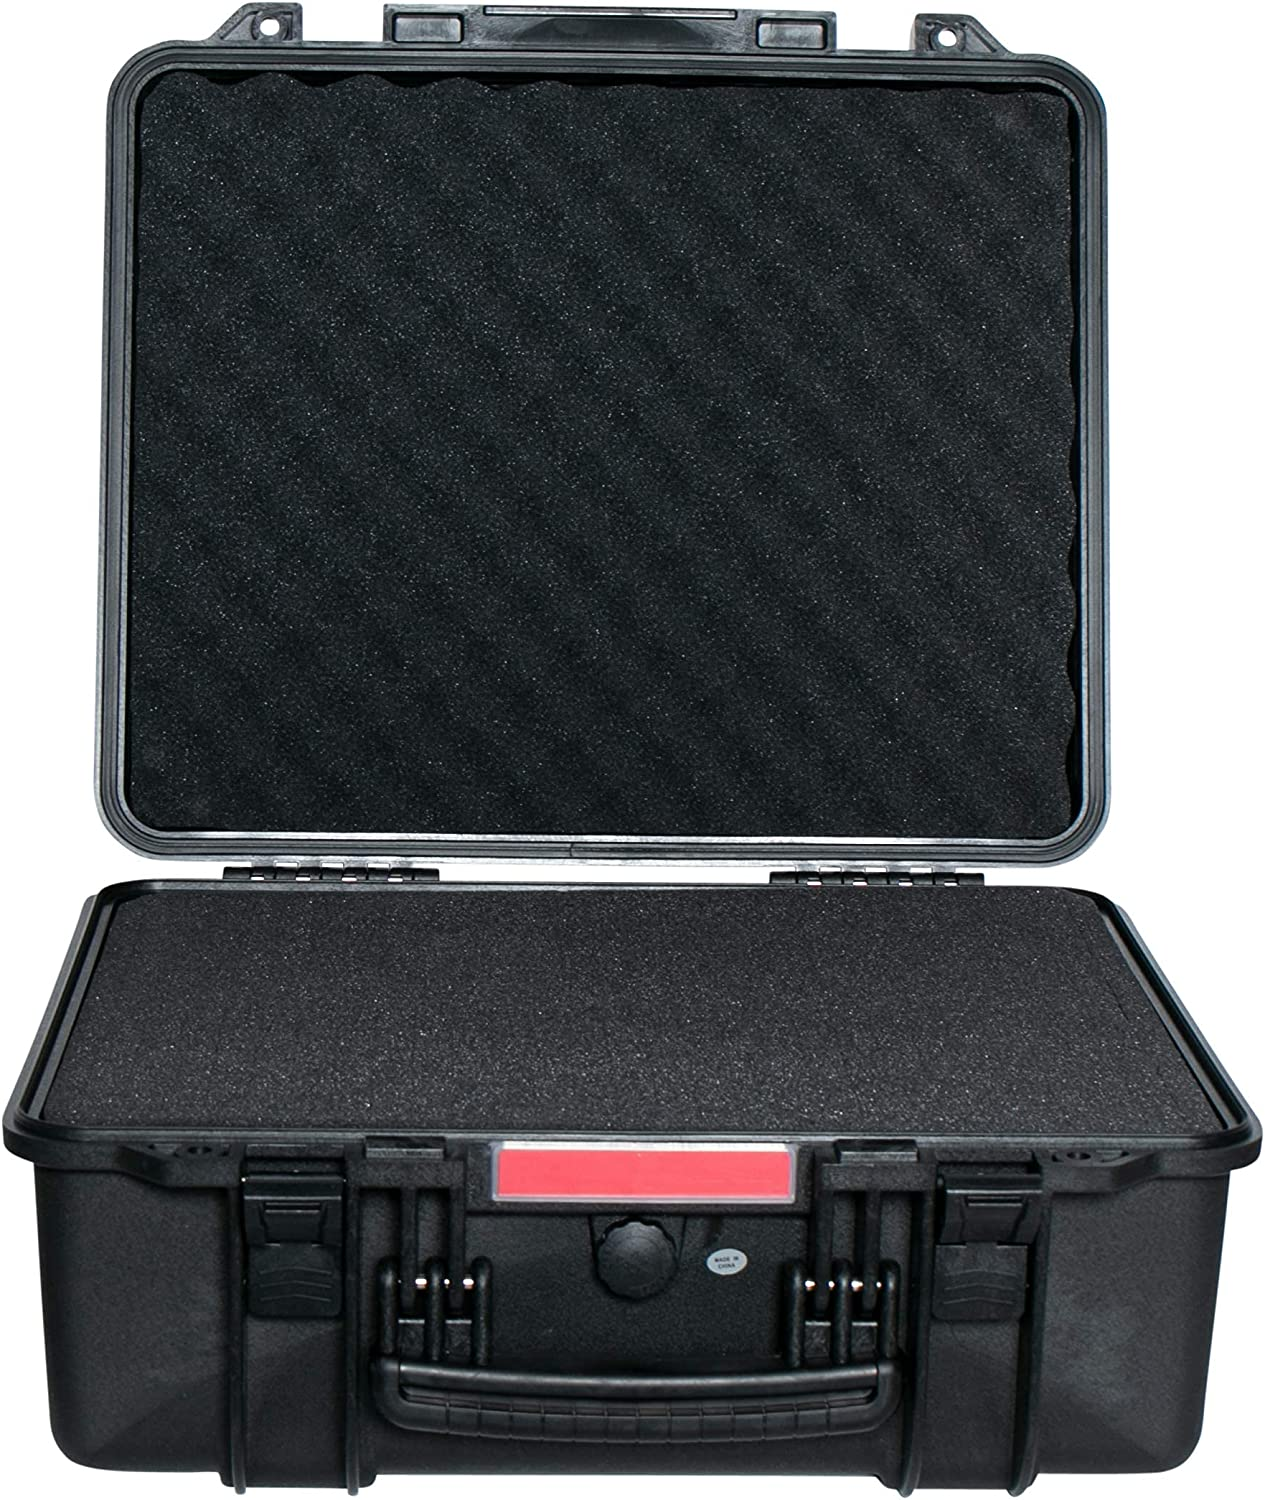 Durabox All Weather Travel Hard Sales results No. 1 Customizable with Topics on TV Foam Case for